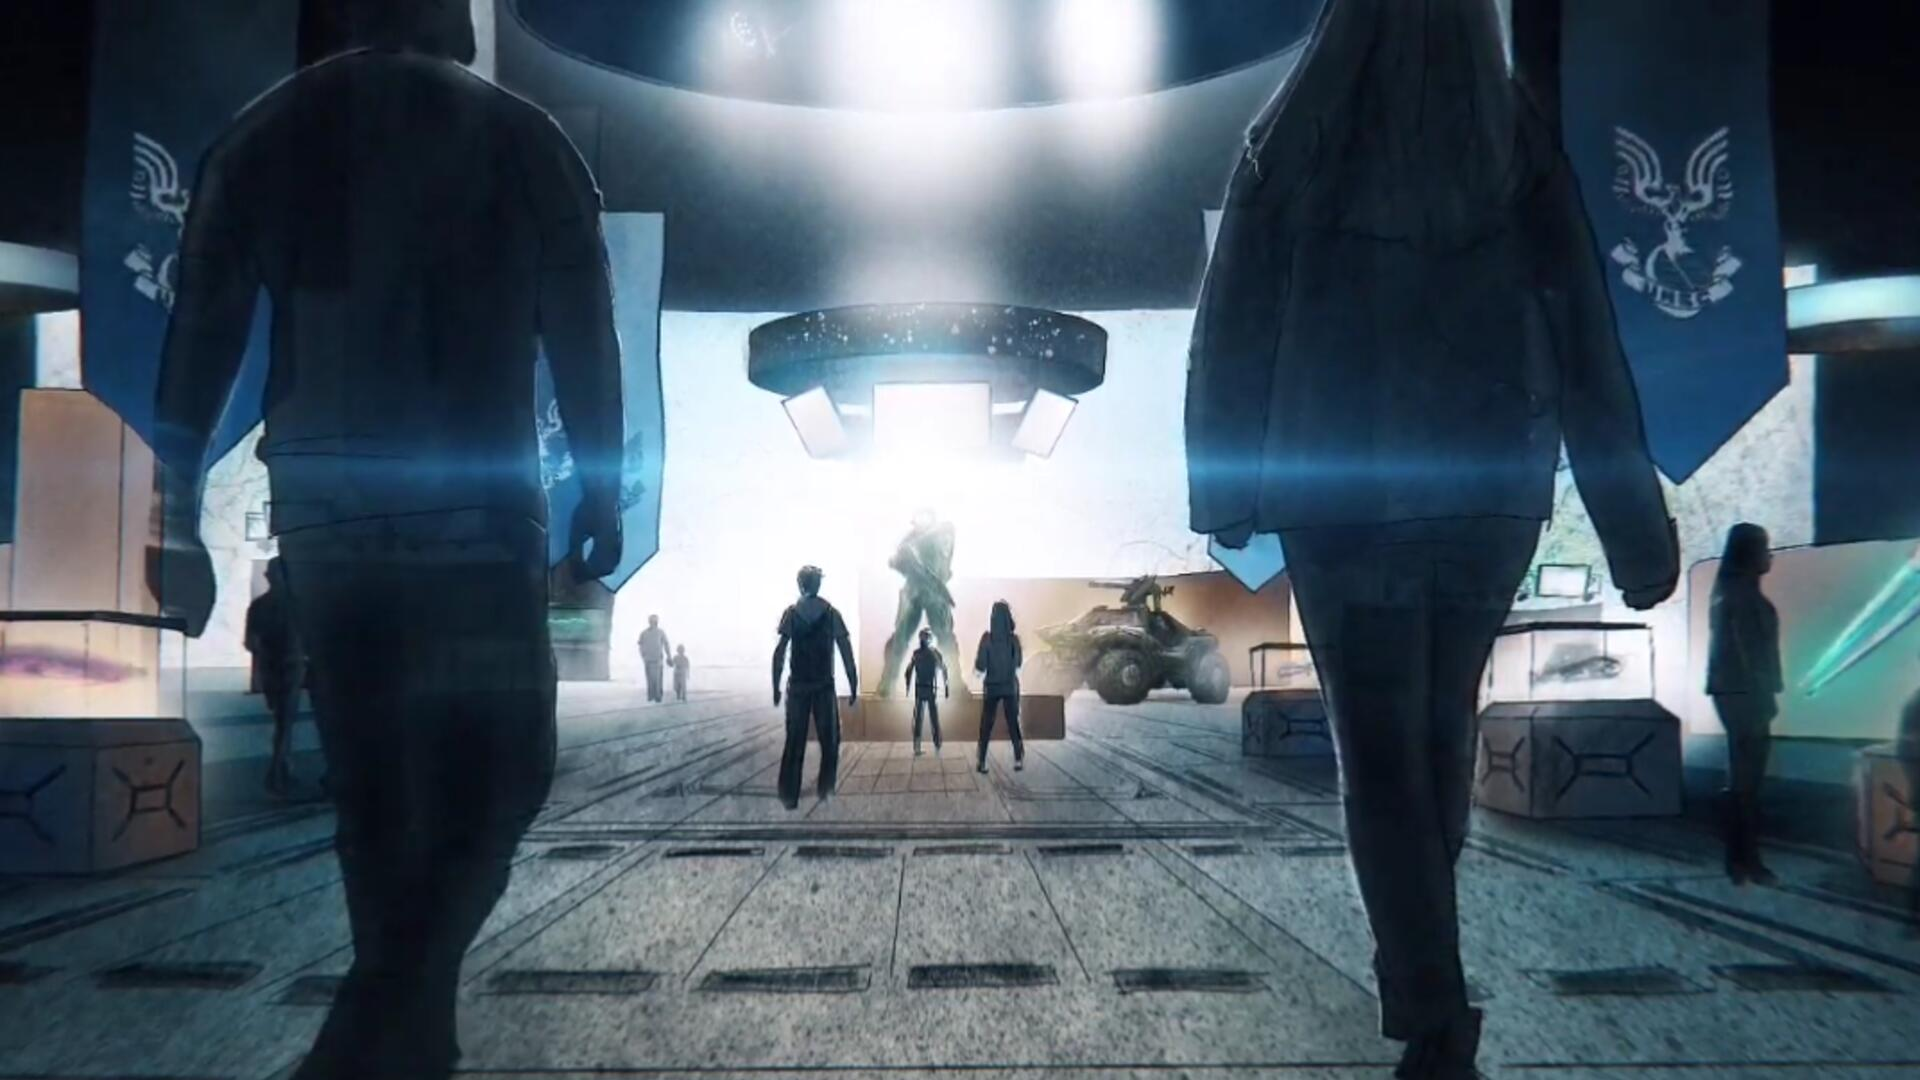 Master Chief is Going On Tour With the Halo: Outpost Discovery Fan Event